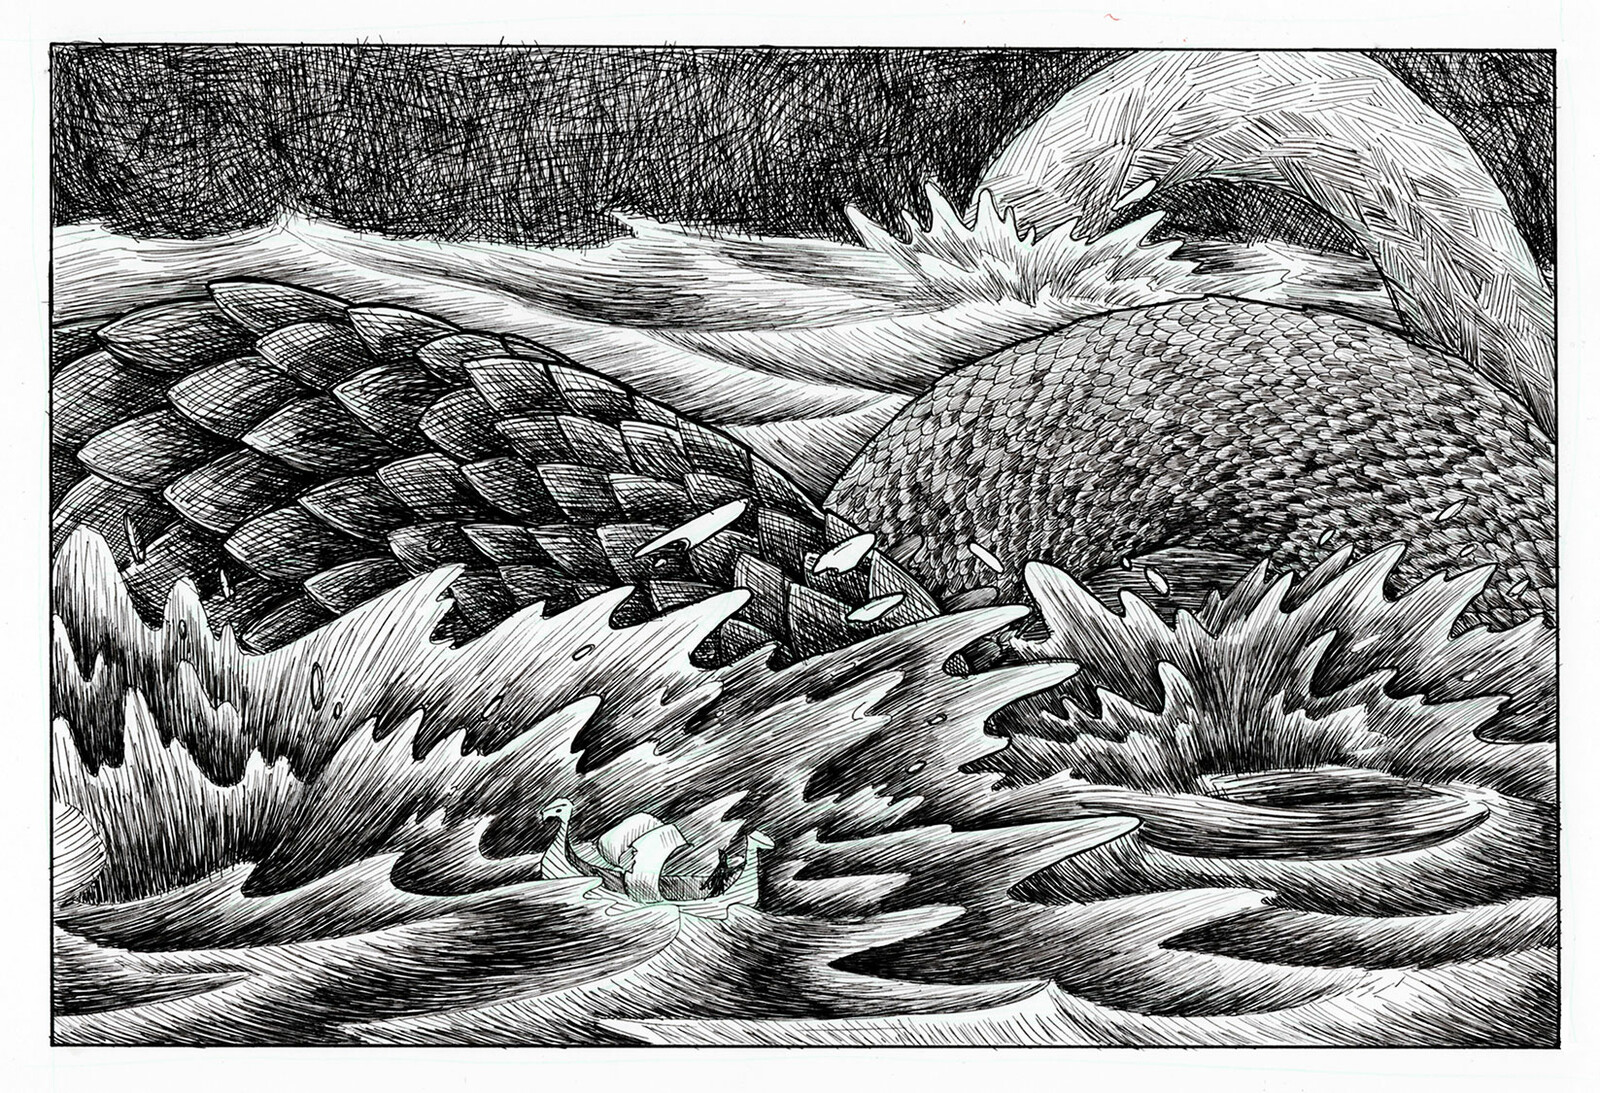 Spin off illustration #2 The serpent hits the water with a smack and Hauk's ship is swept off with the waves.